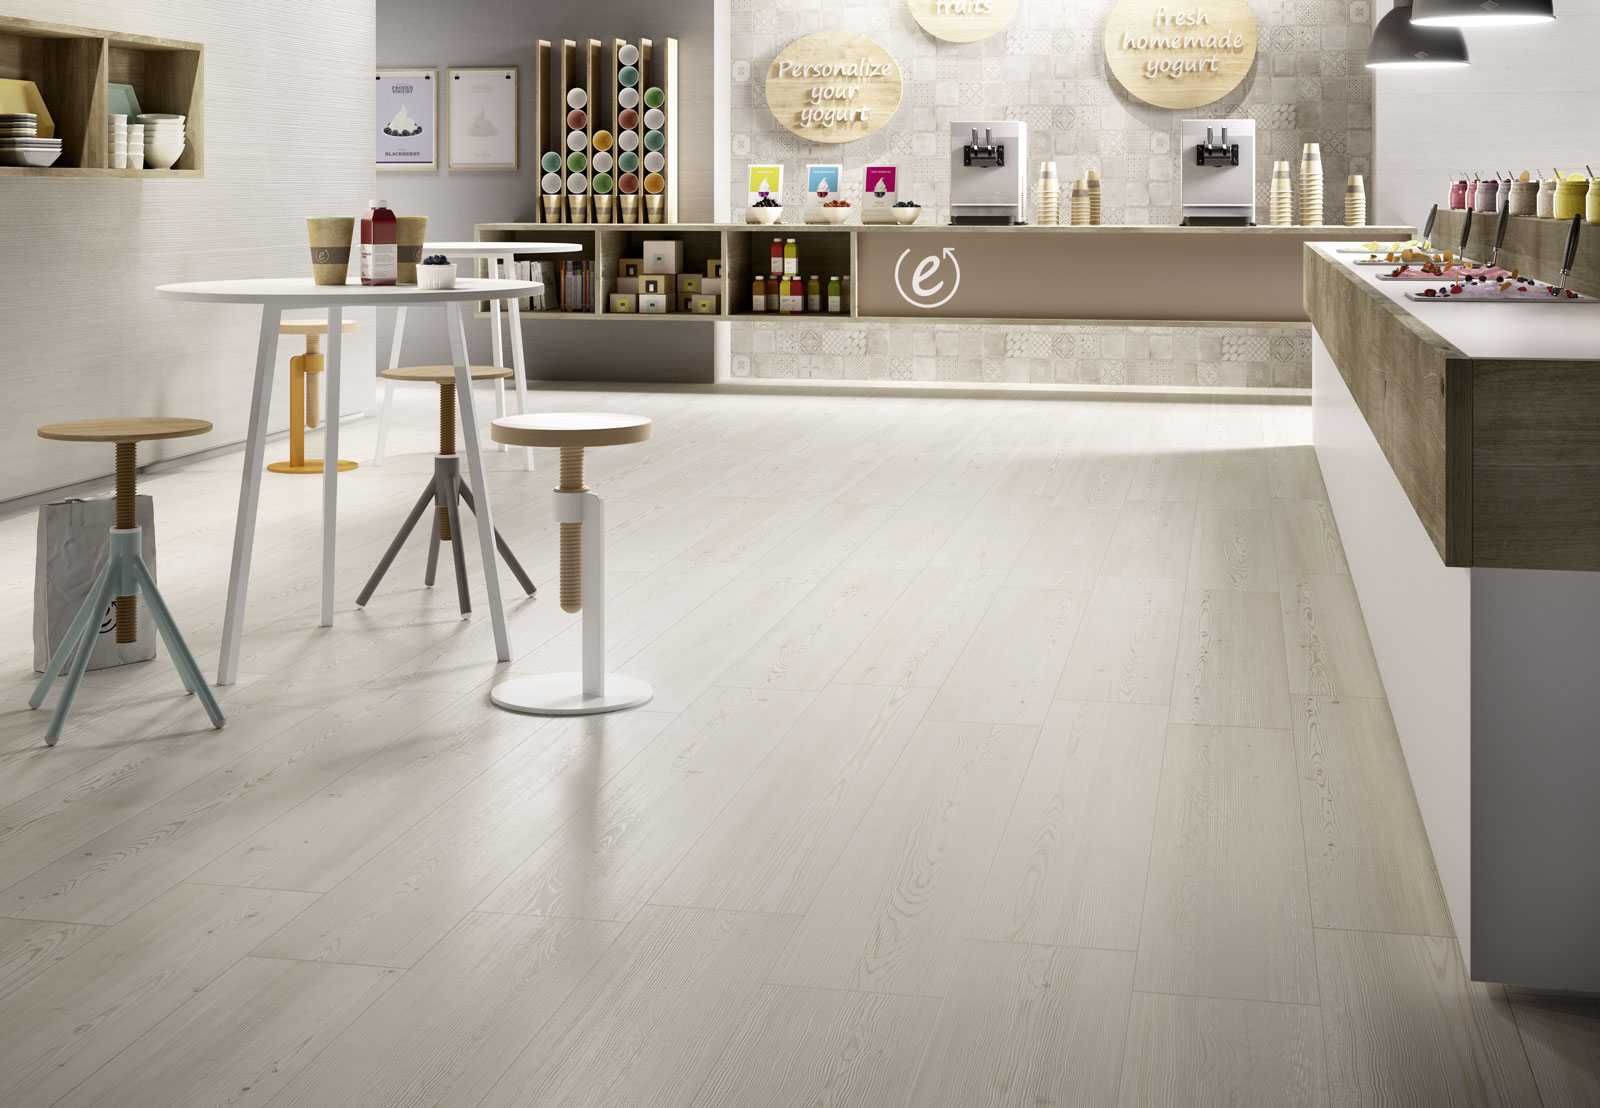 Treverktrend gres porcel nico imitaci n madera marazzi for Gres tipo madera